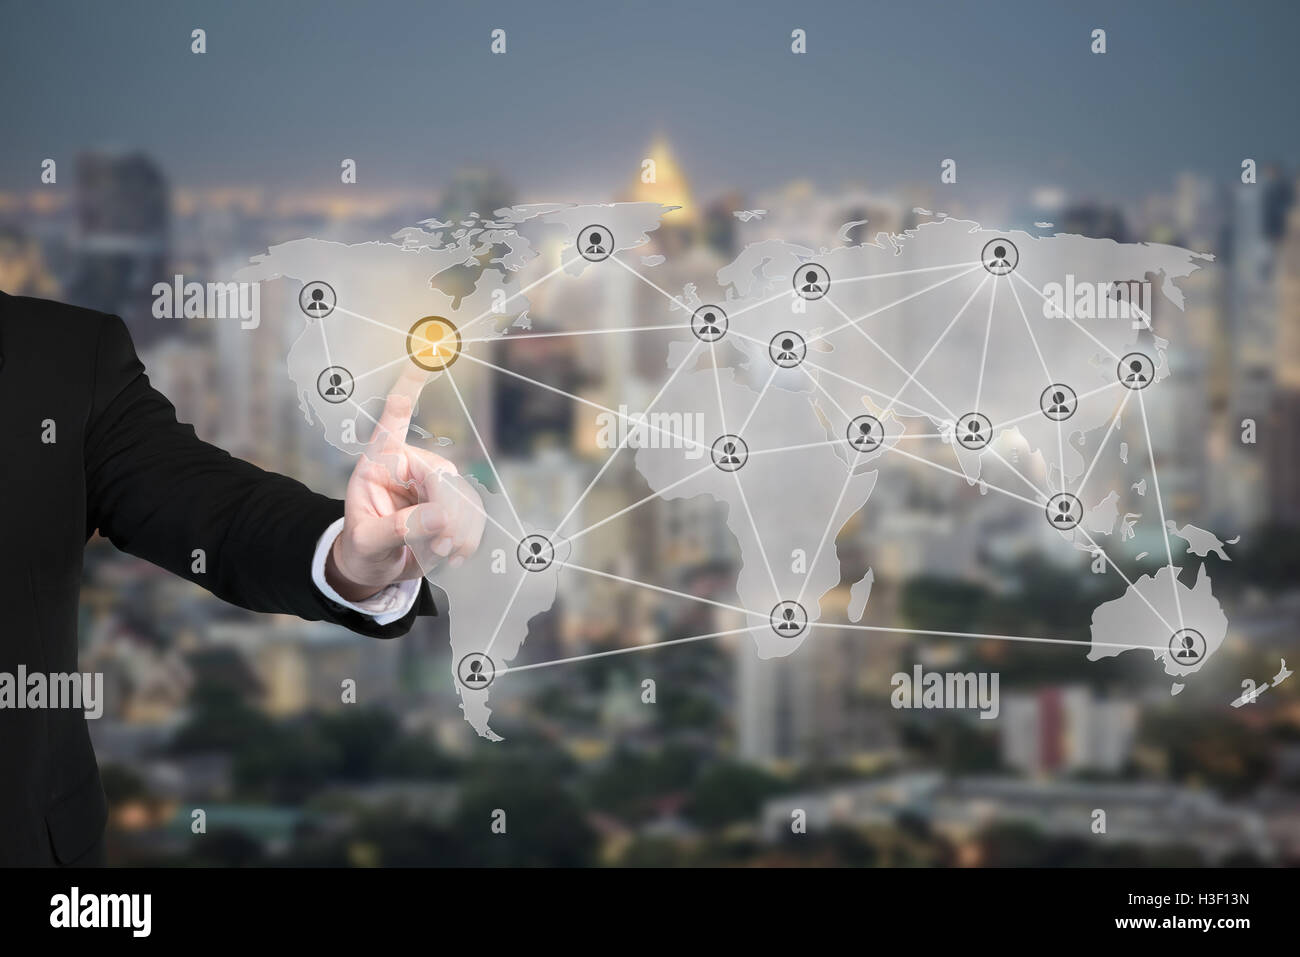 Businessman pressing modern social partnership network connection buttons on avirtual background. Partnership network - Stock Image